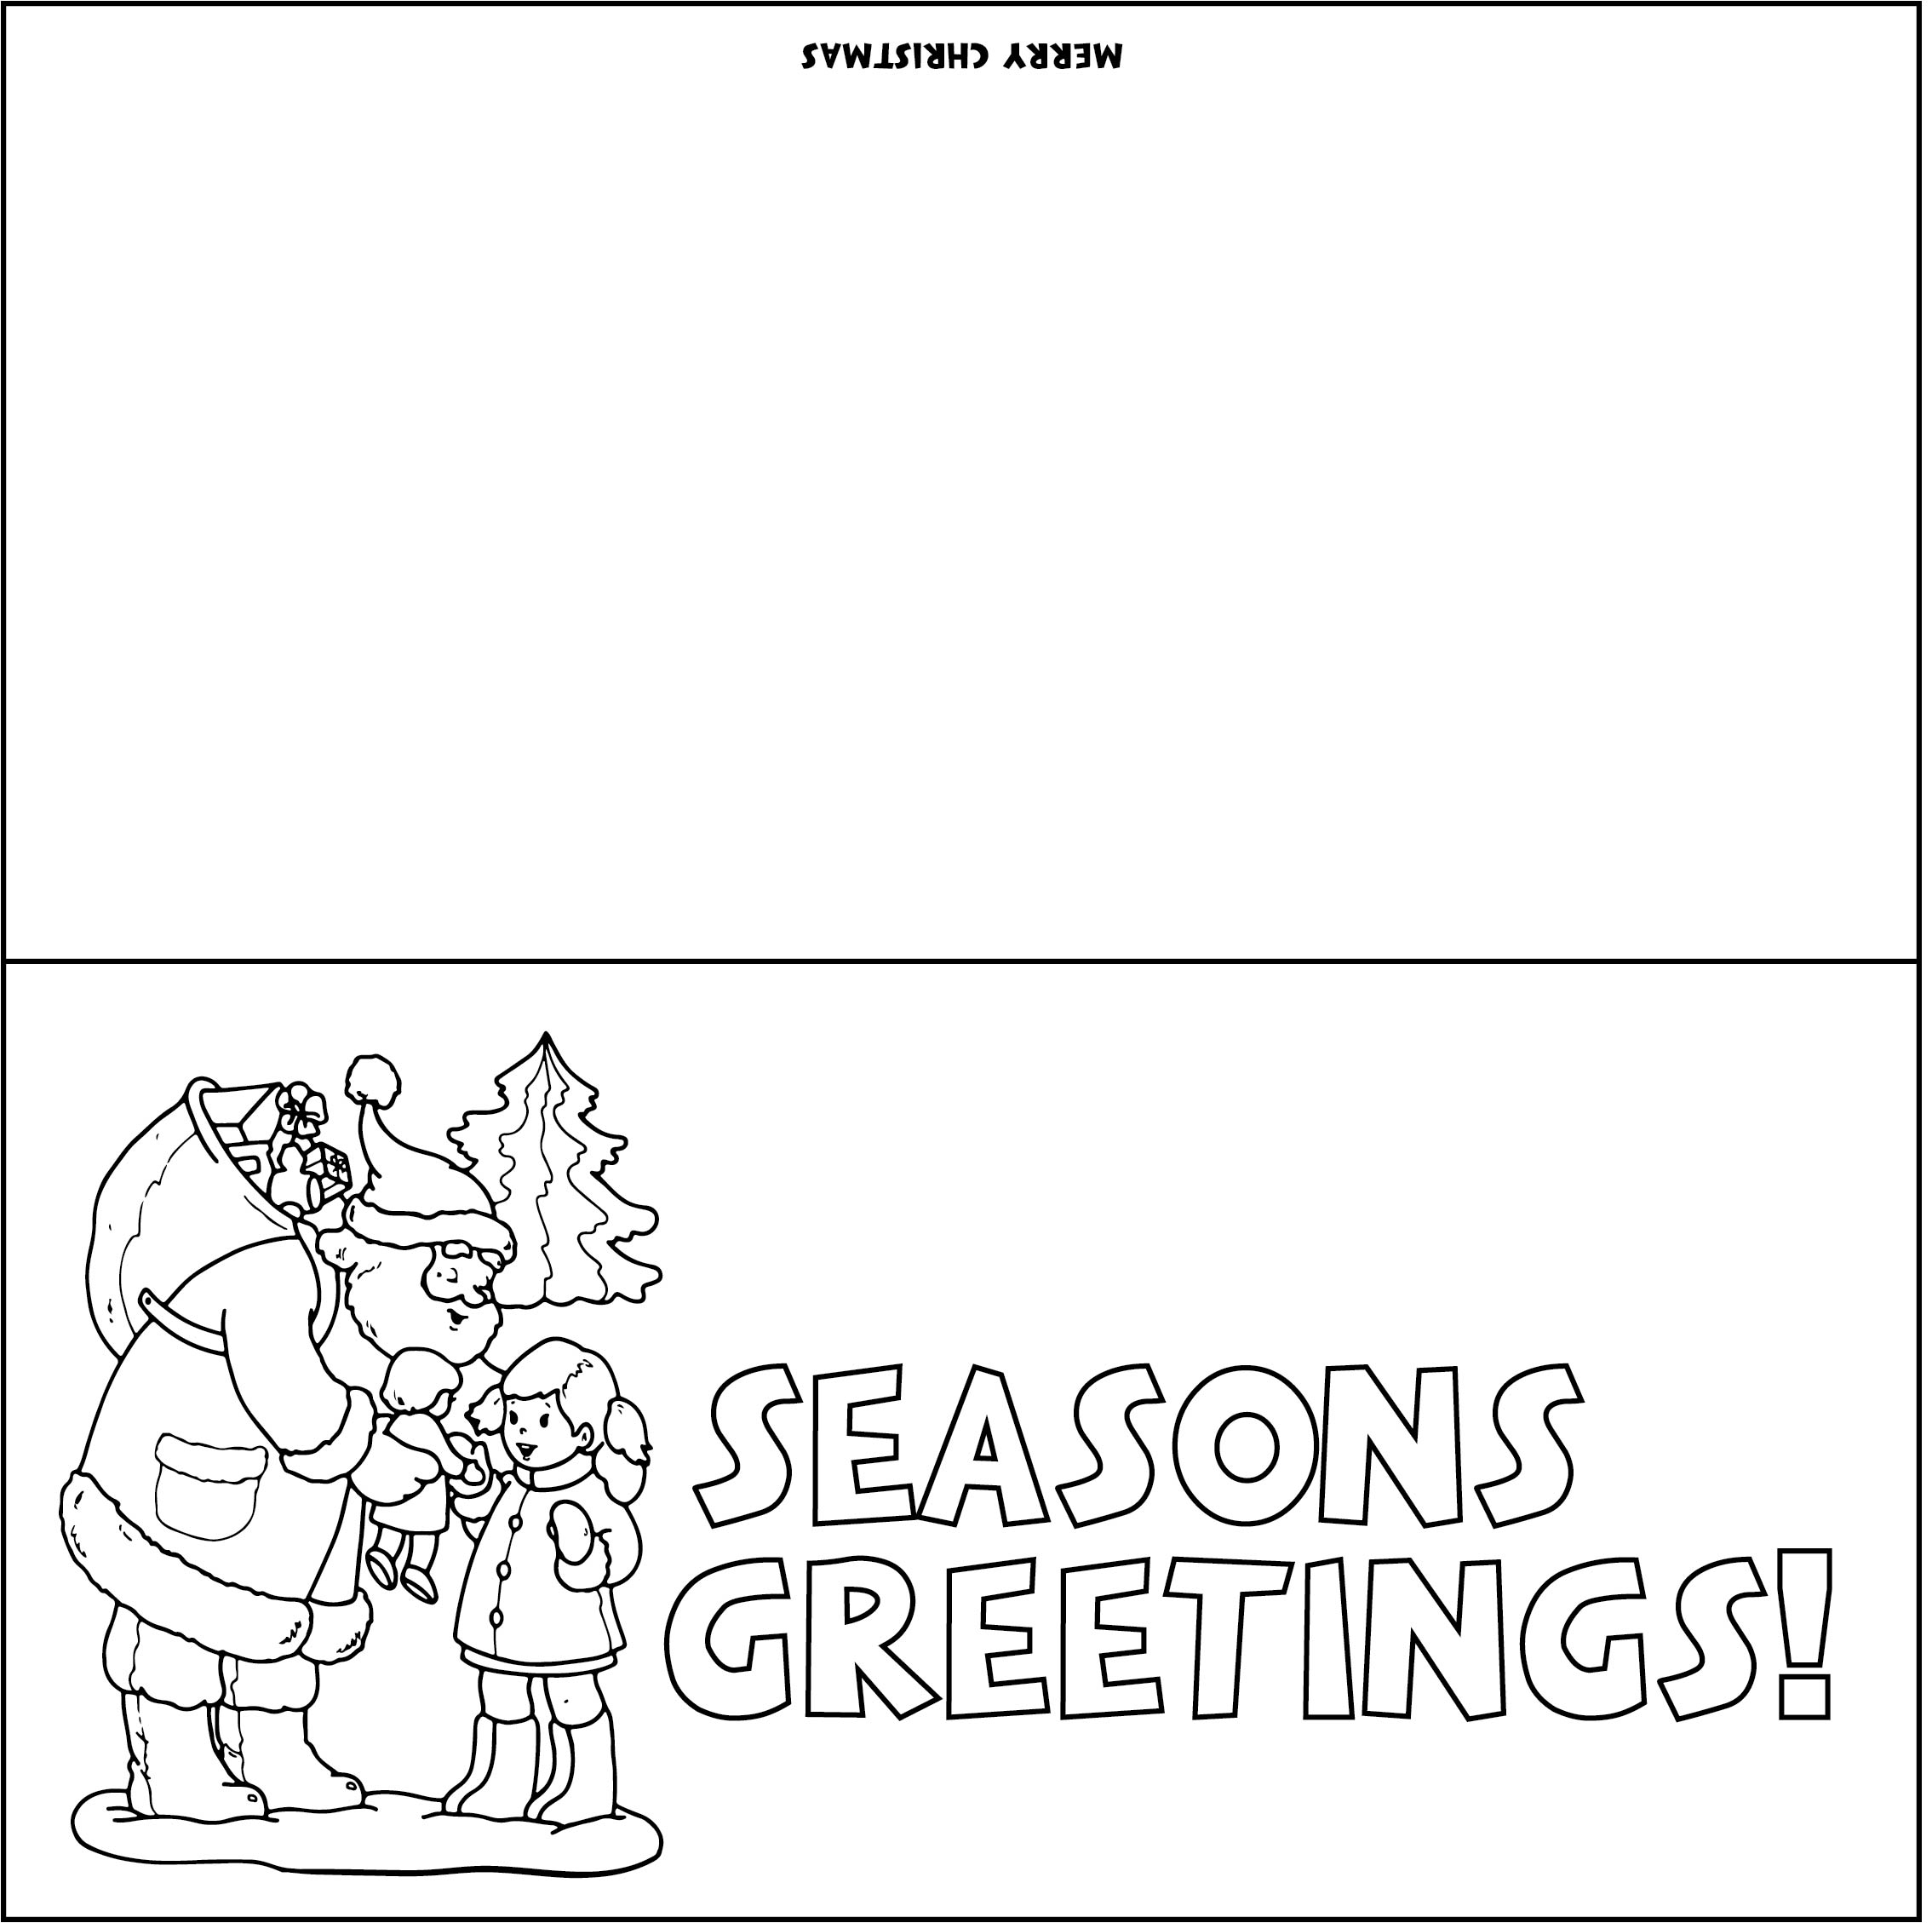 free coloring christmas cards christmas printable images gallery category page 1 free coloring christmas cards